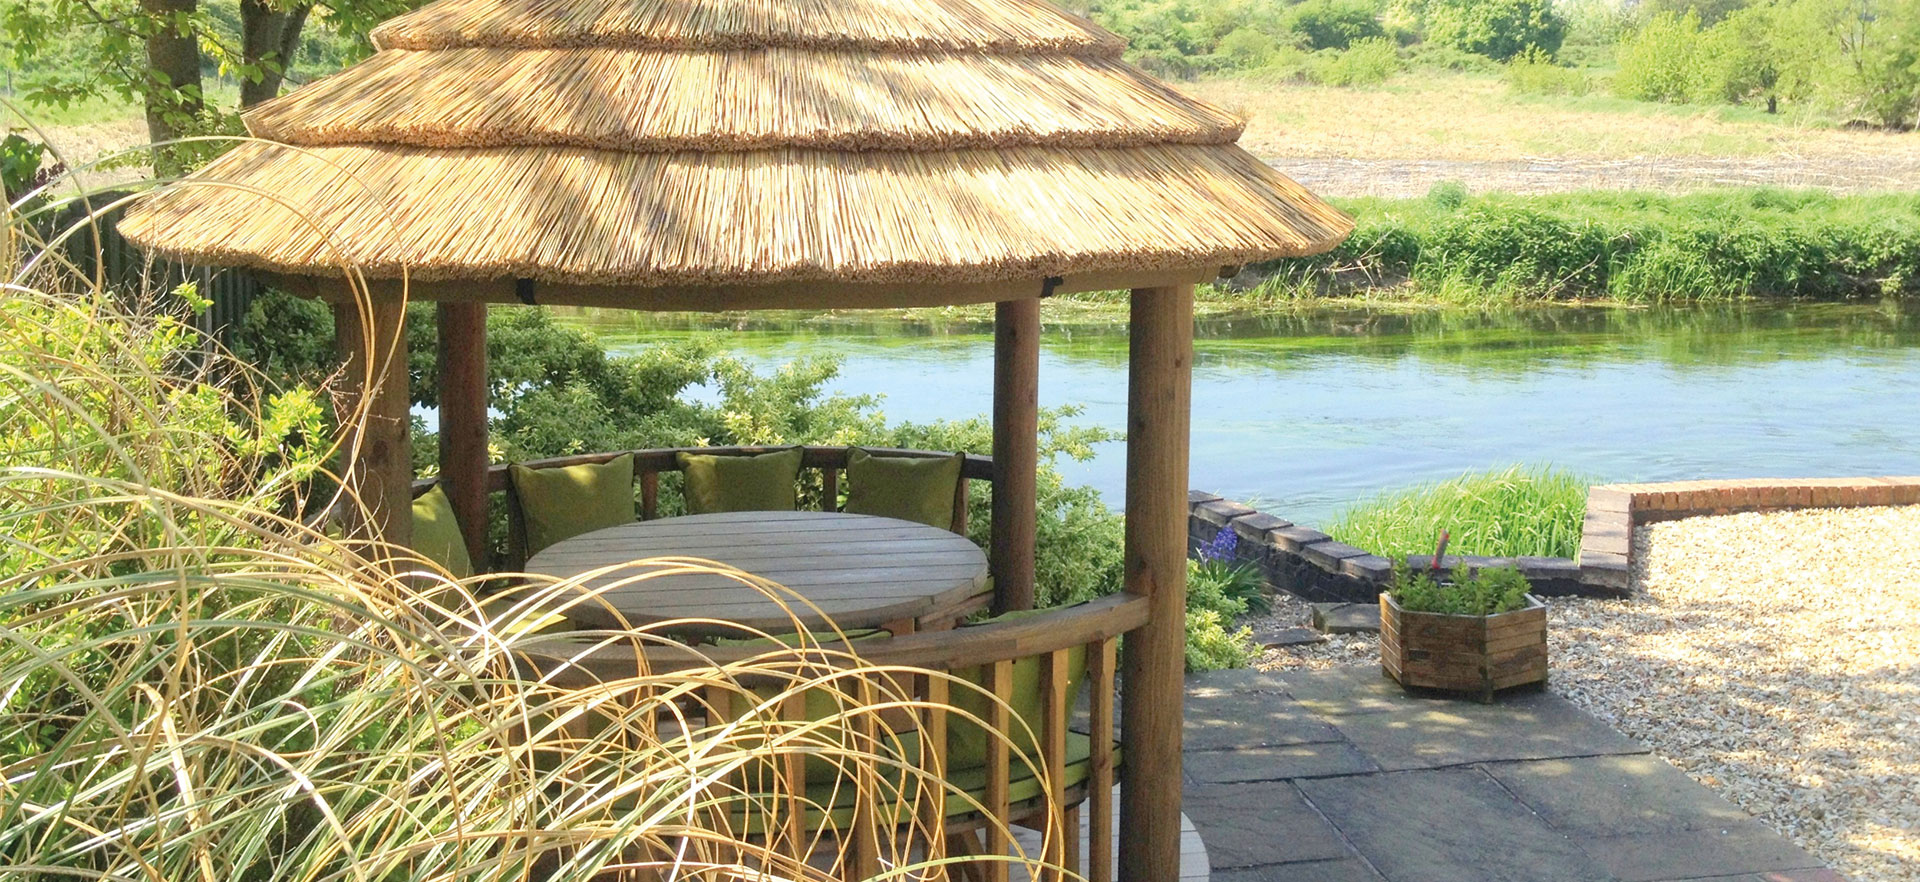 2.5 metre thatched gazebo overlooking waterfront